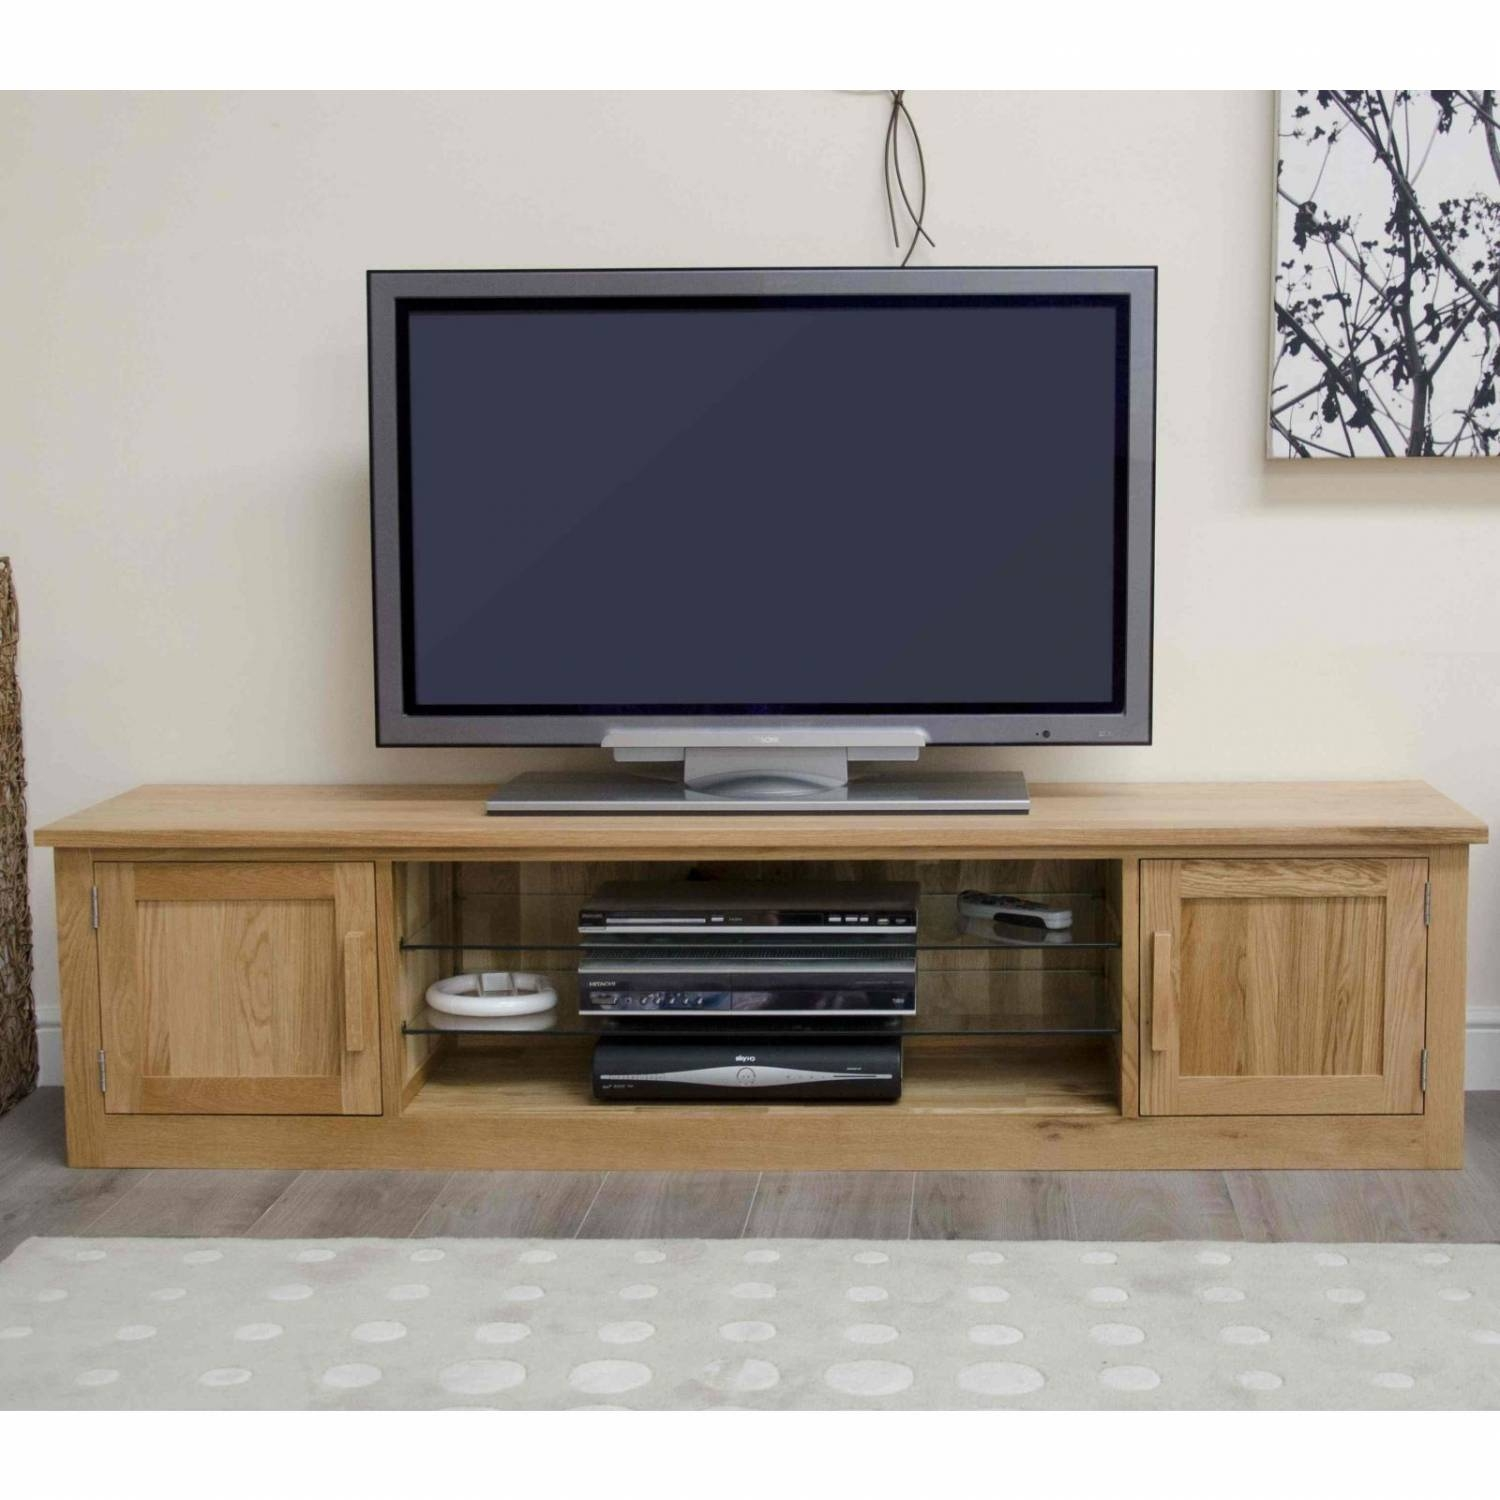 Arden Solid Oak Living Room Furniture Large Widescreen Tv Cabinet with Widescreen Tv Cabinets (Image 2 of 15)